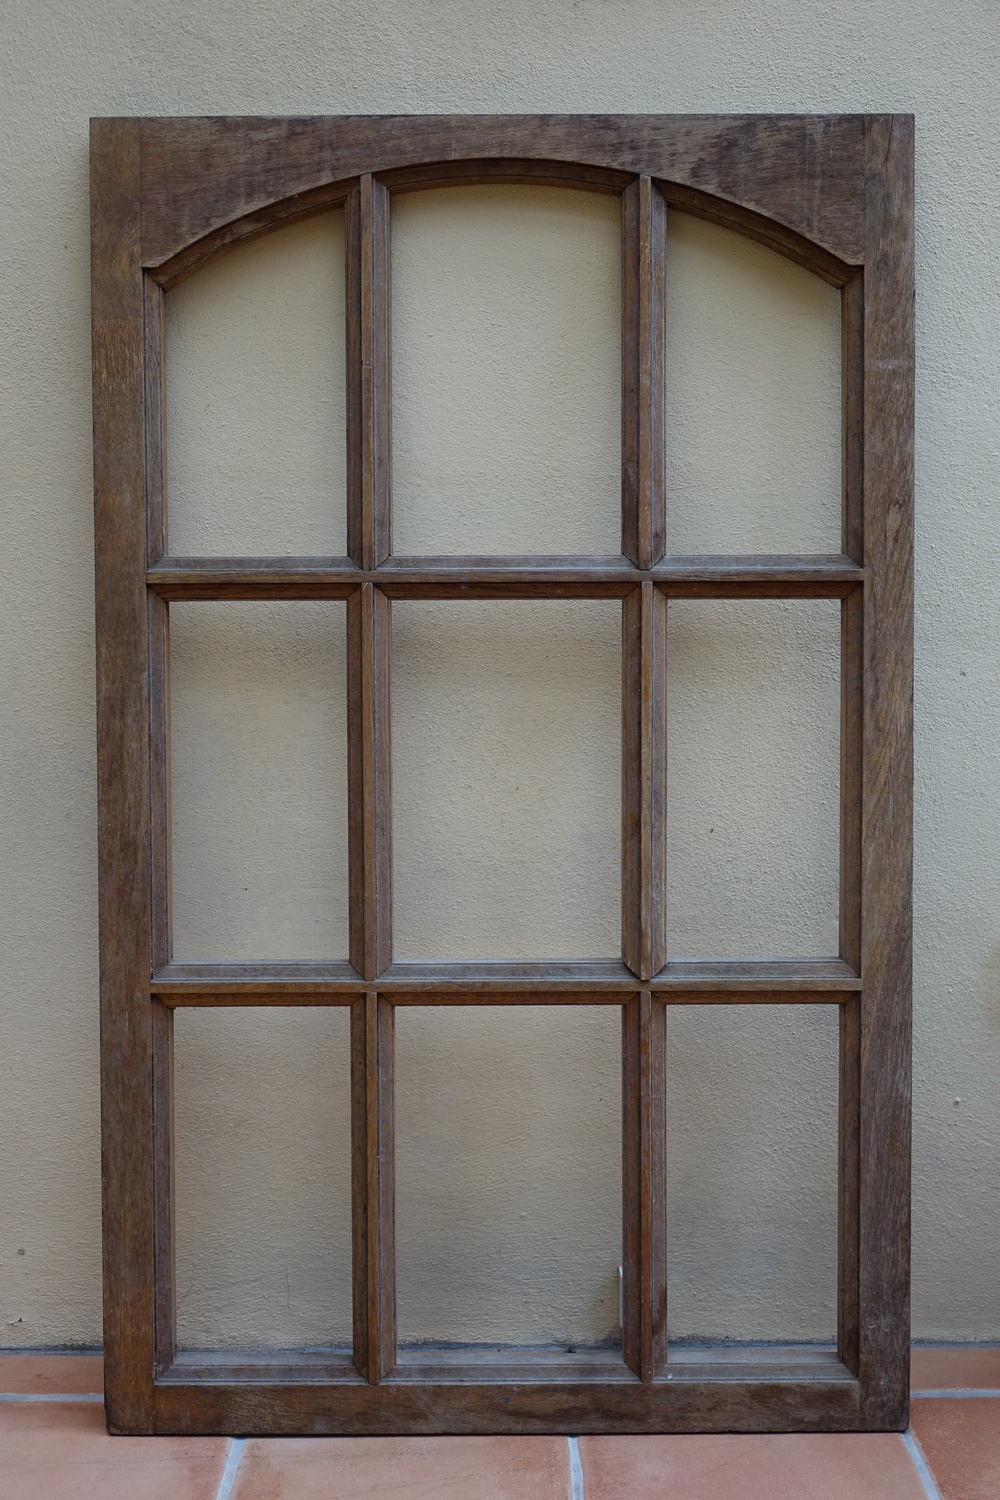 Vintage Large Window Frame